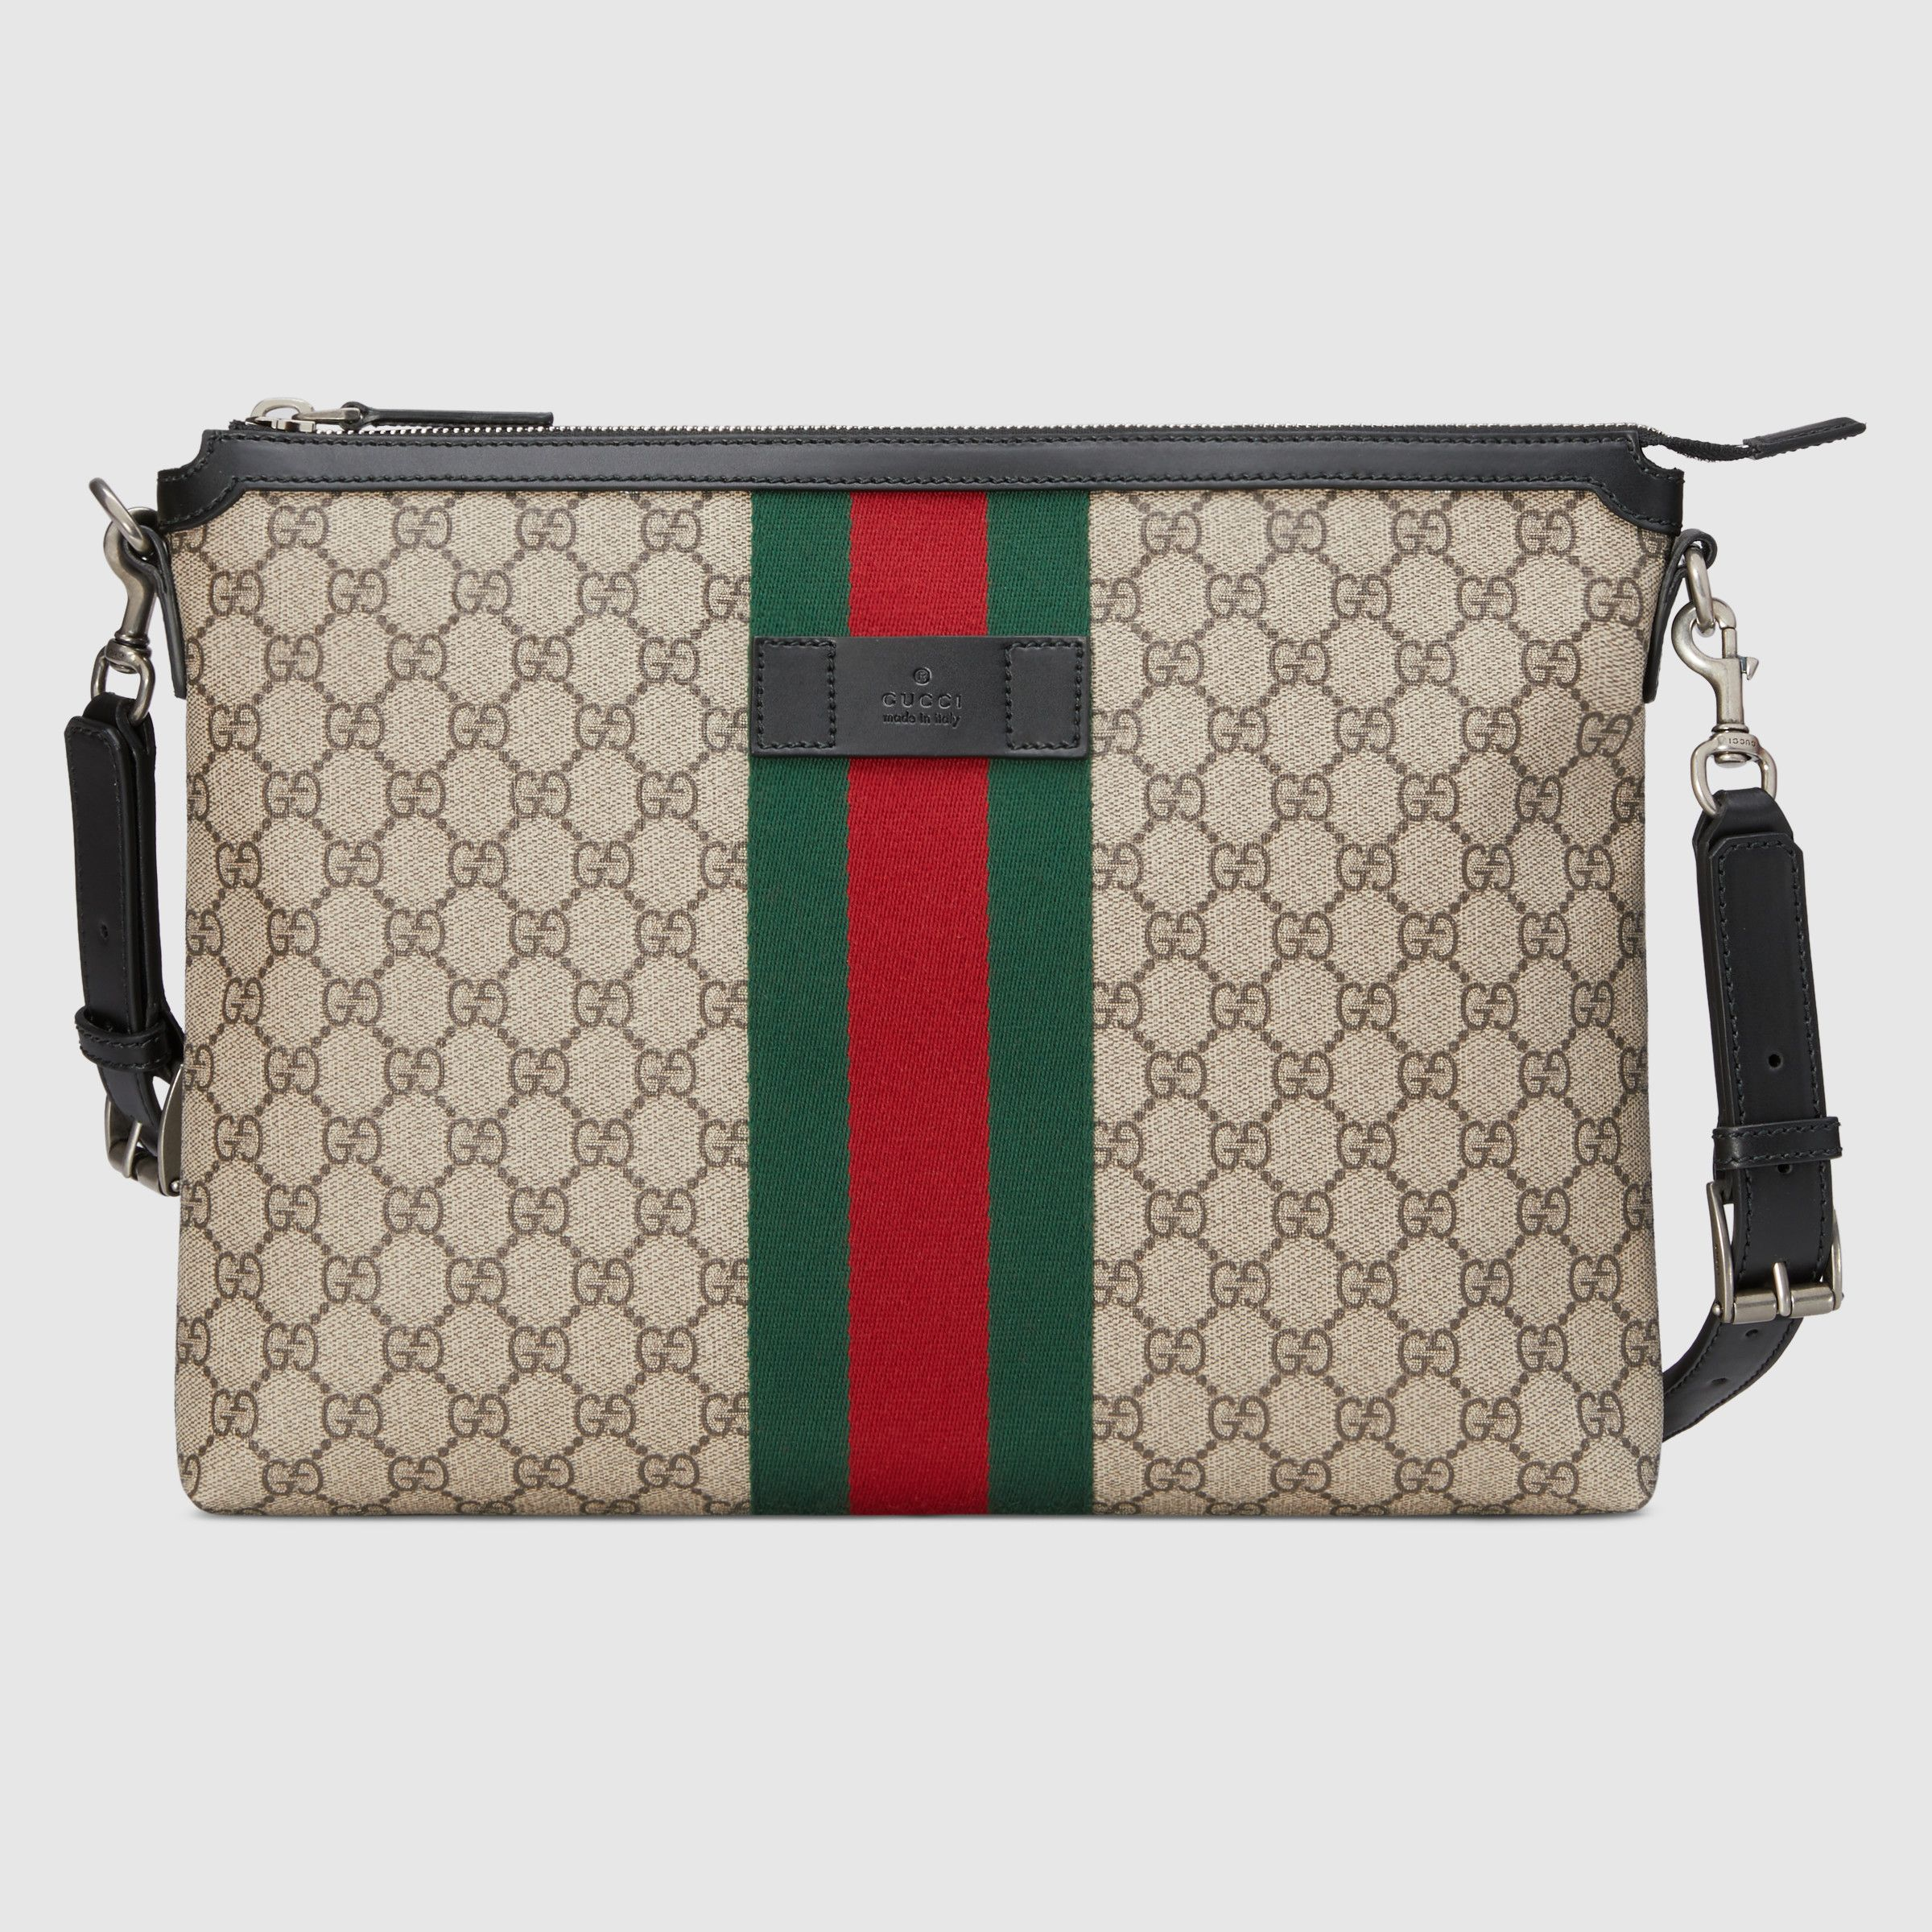 2ed5f7595 GG Supreme medium messenger bag in Beige/ebony GG Supreme canvas, a  material with low environmental impact, with black leather trim | Gucci  Men's Messenger ...